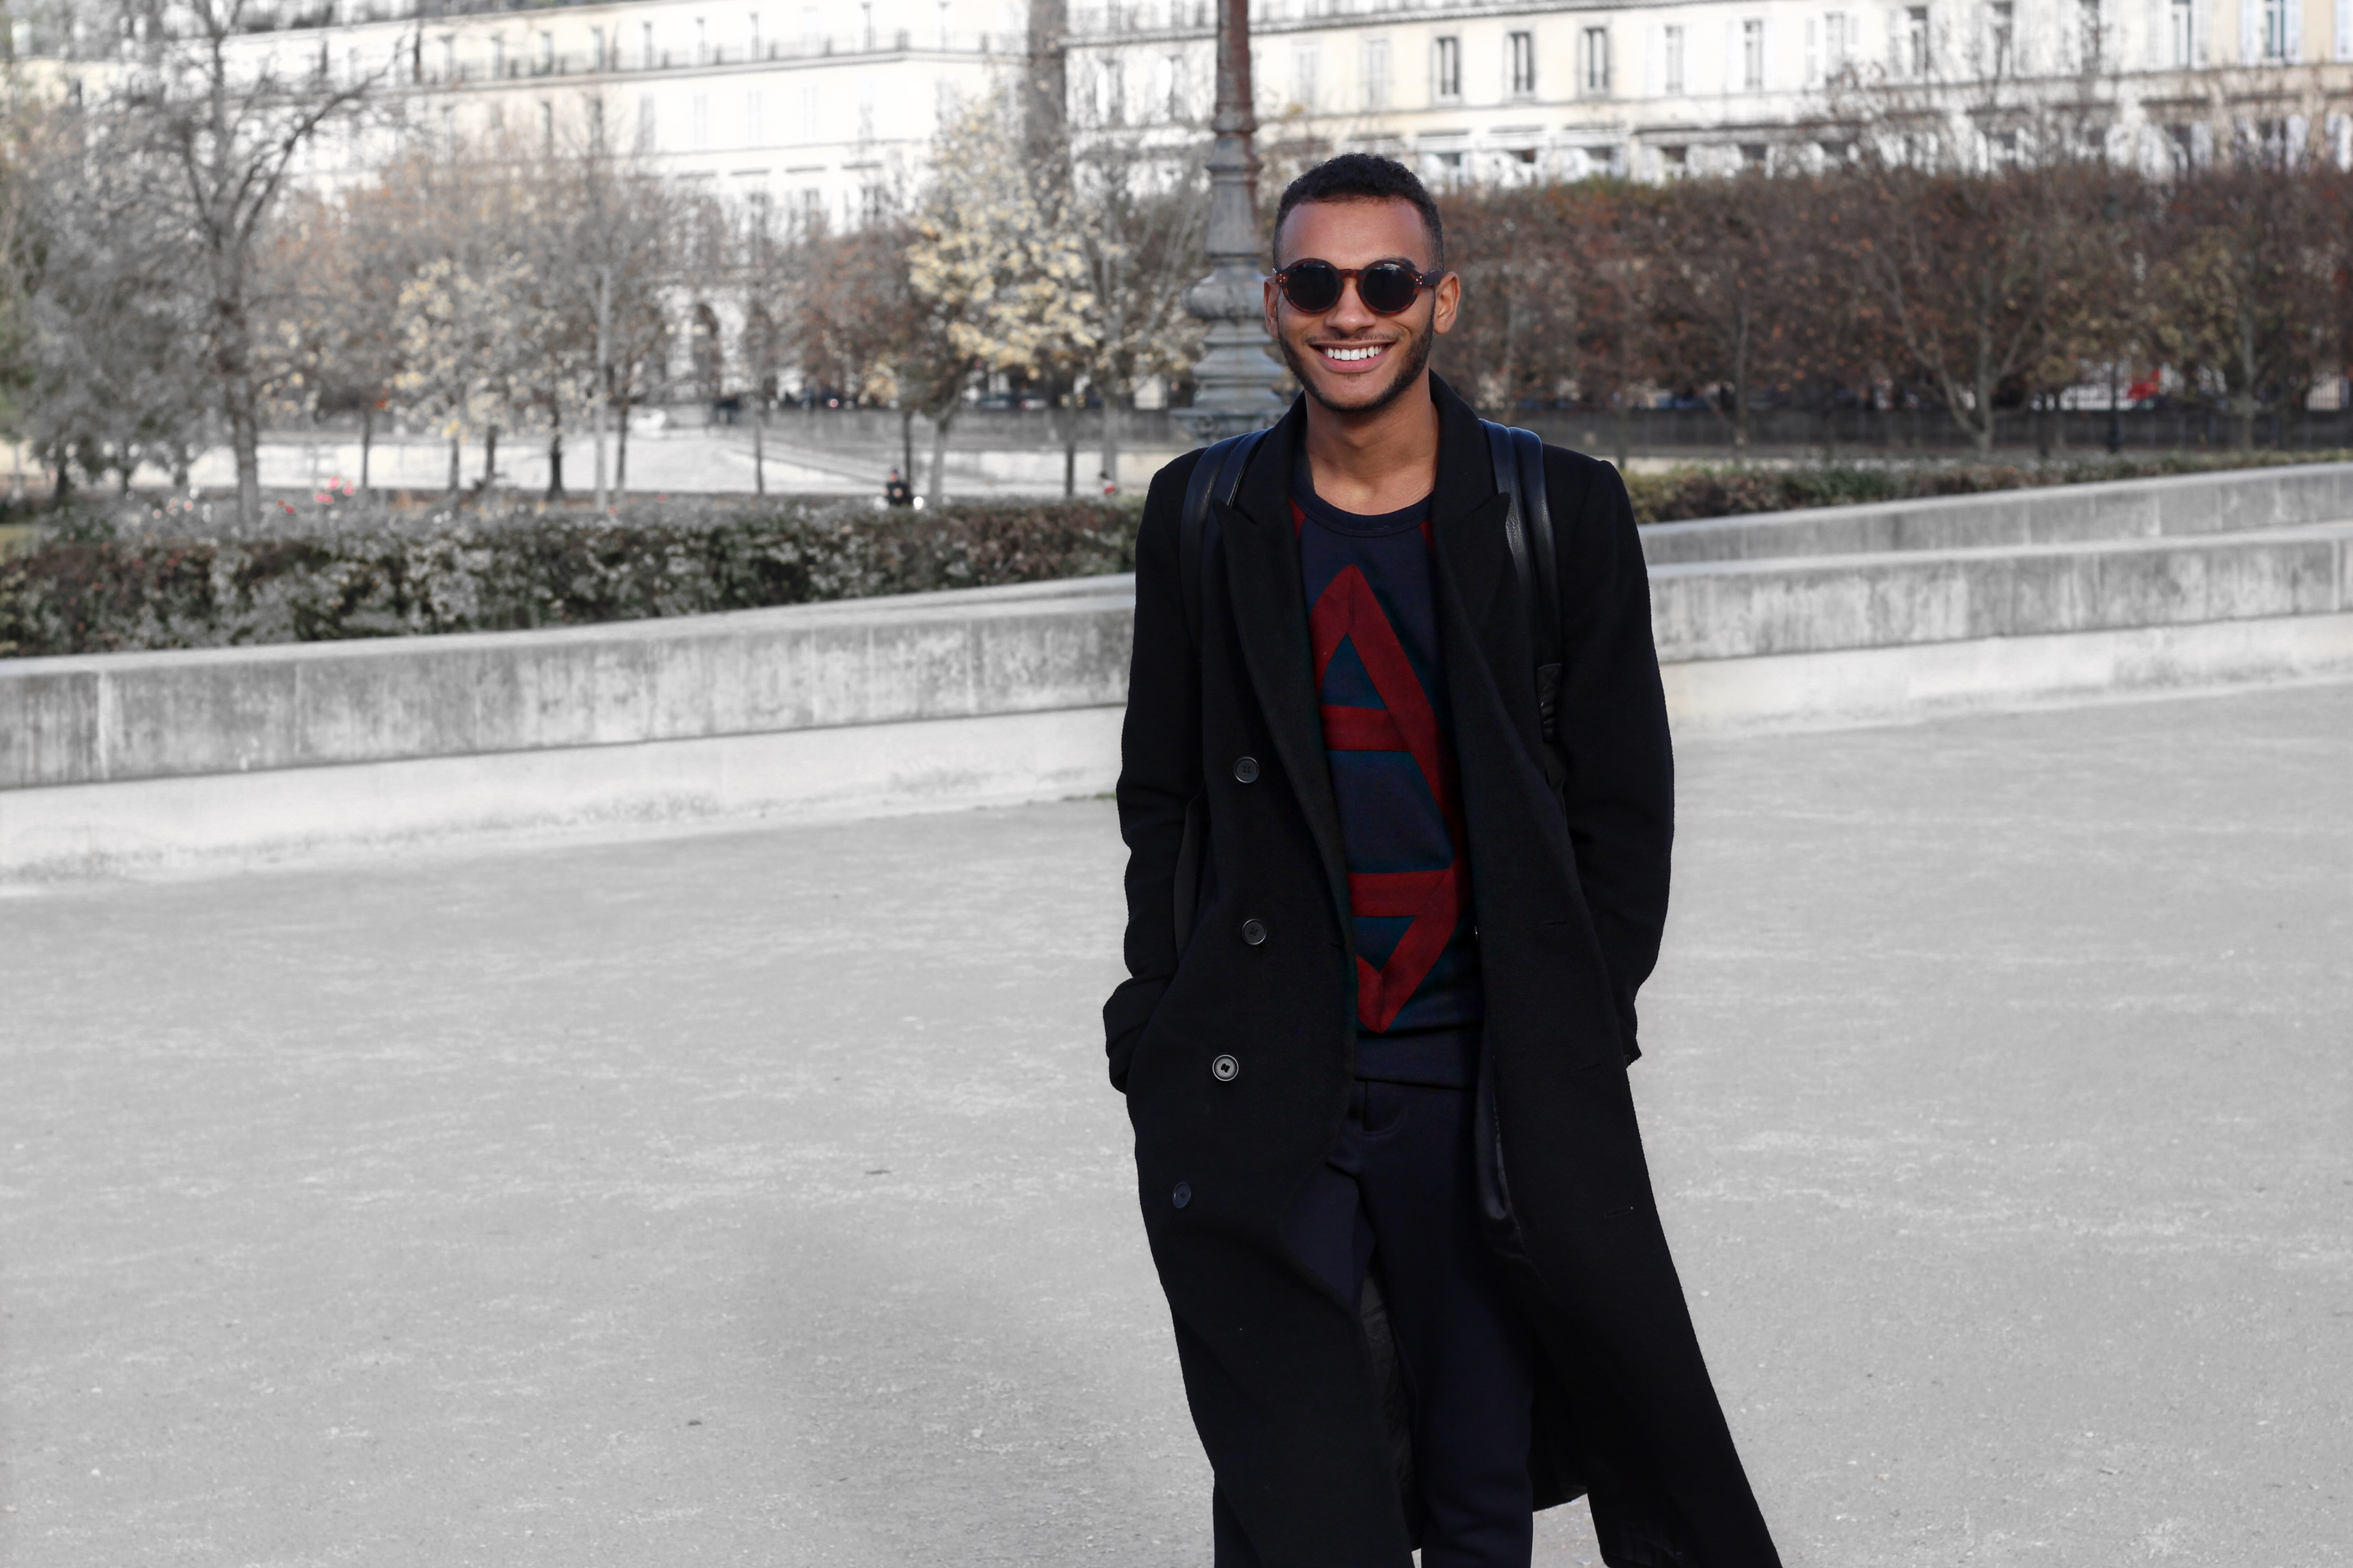 patrons-paris-mrfoures-ootd-blogueur-homme-bordeaux-paris-blog-mode-homme-black-blogger-streetstyle-street-look